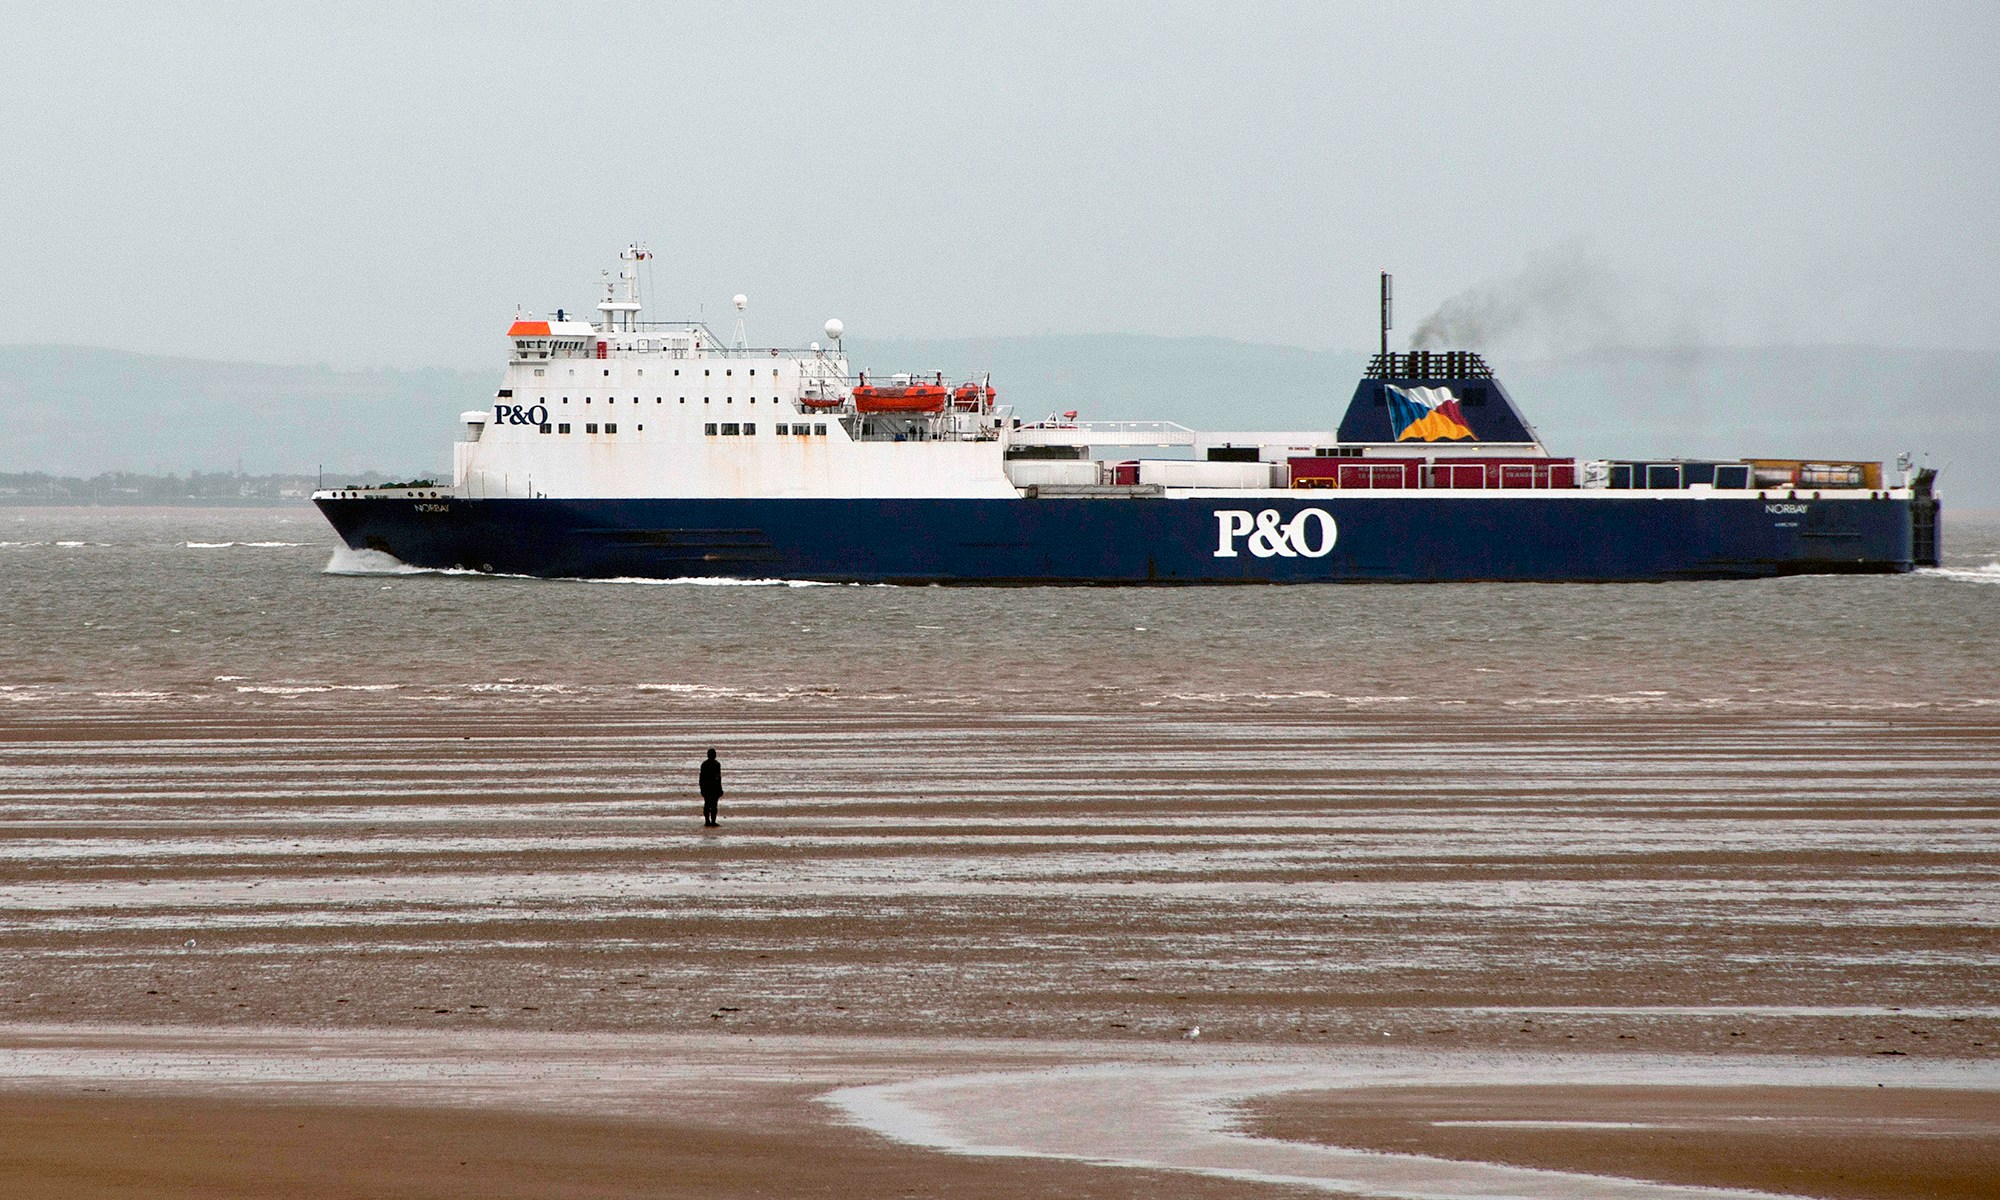 P&O Ferry passing Another Place Statues